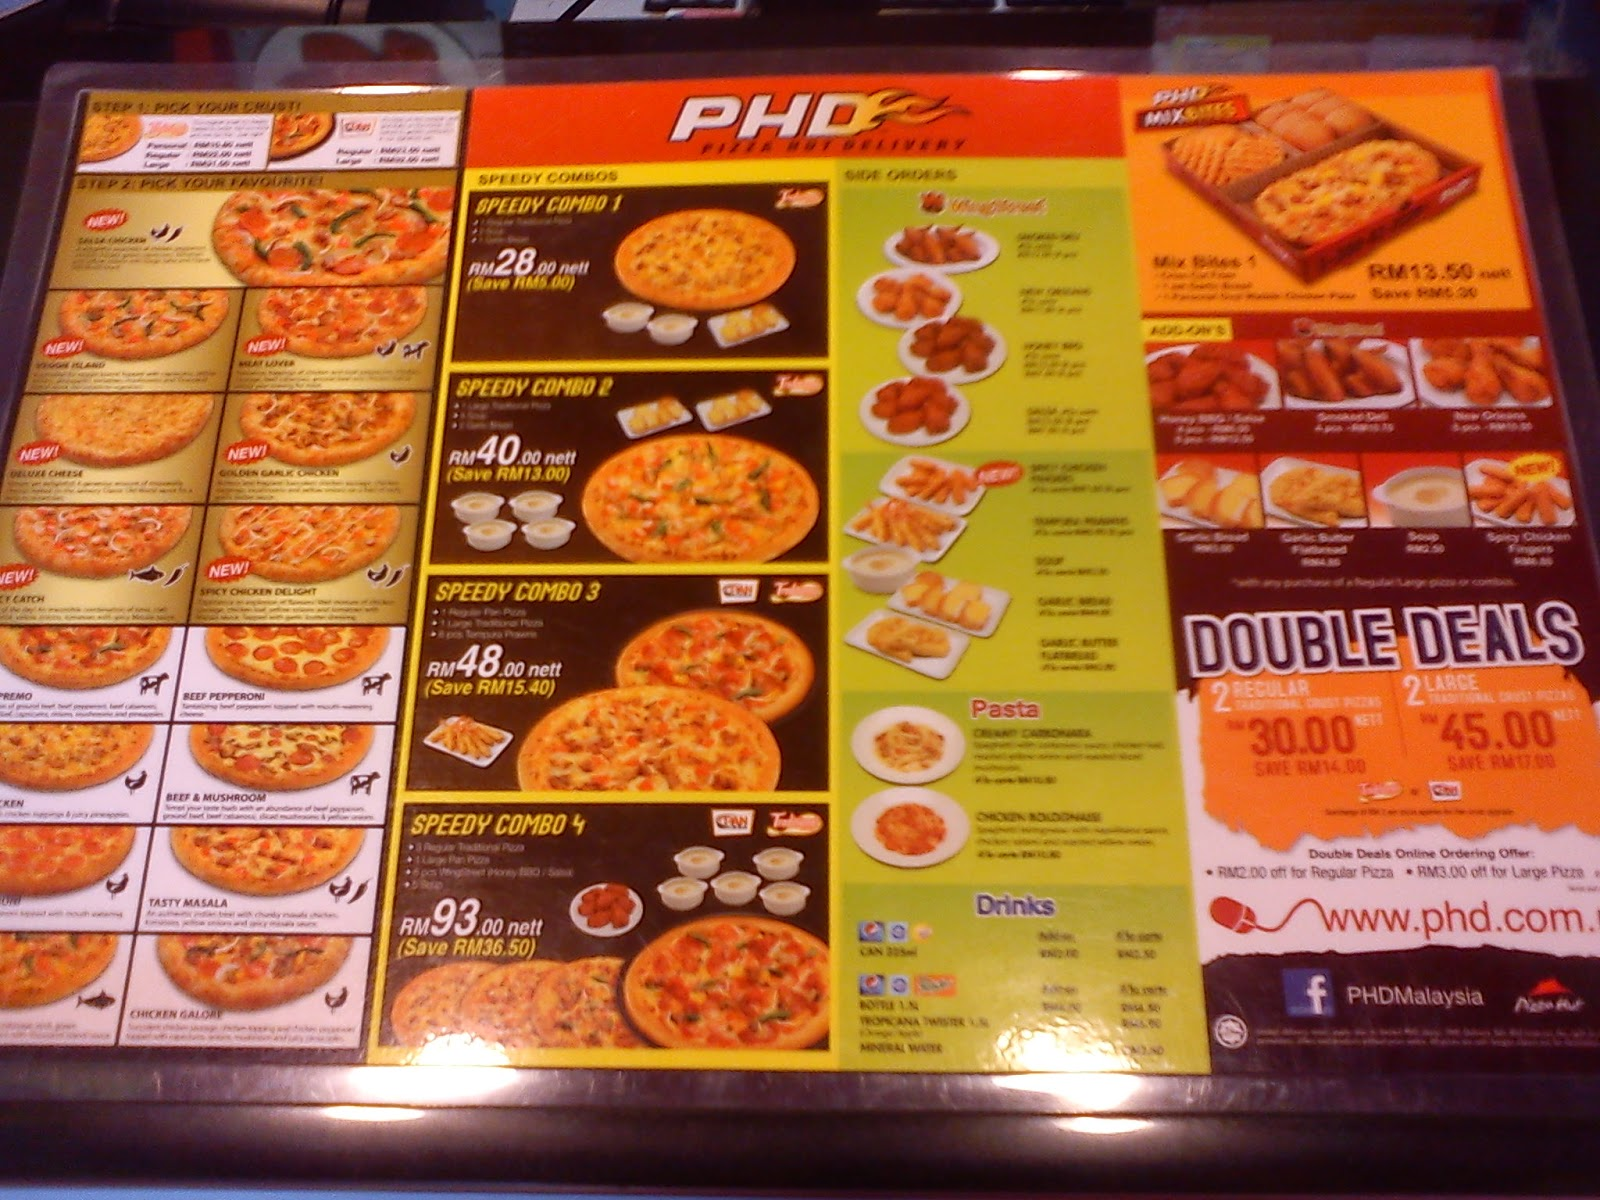 Pizza hut is a great place for a pizza when you're craving it. The taste is very special and you cannot find it in another place. Te service is fast too.